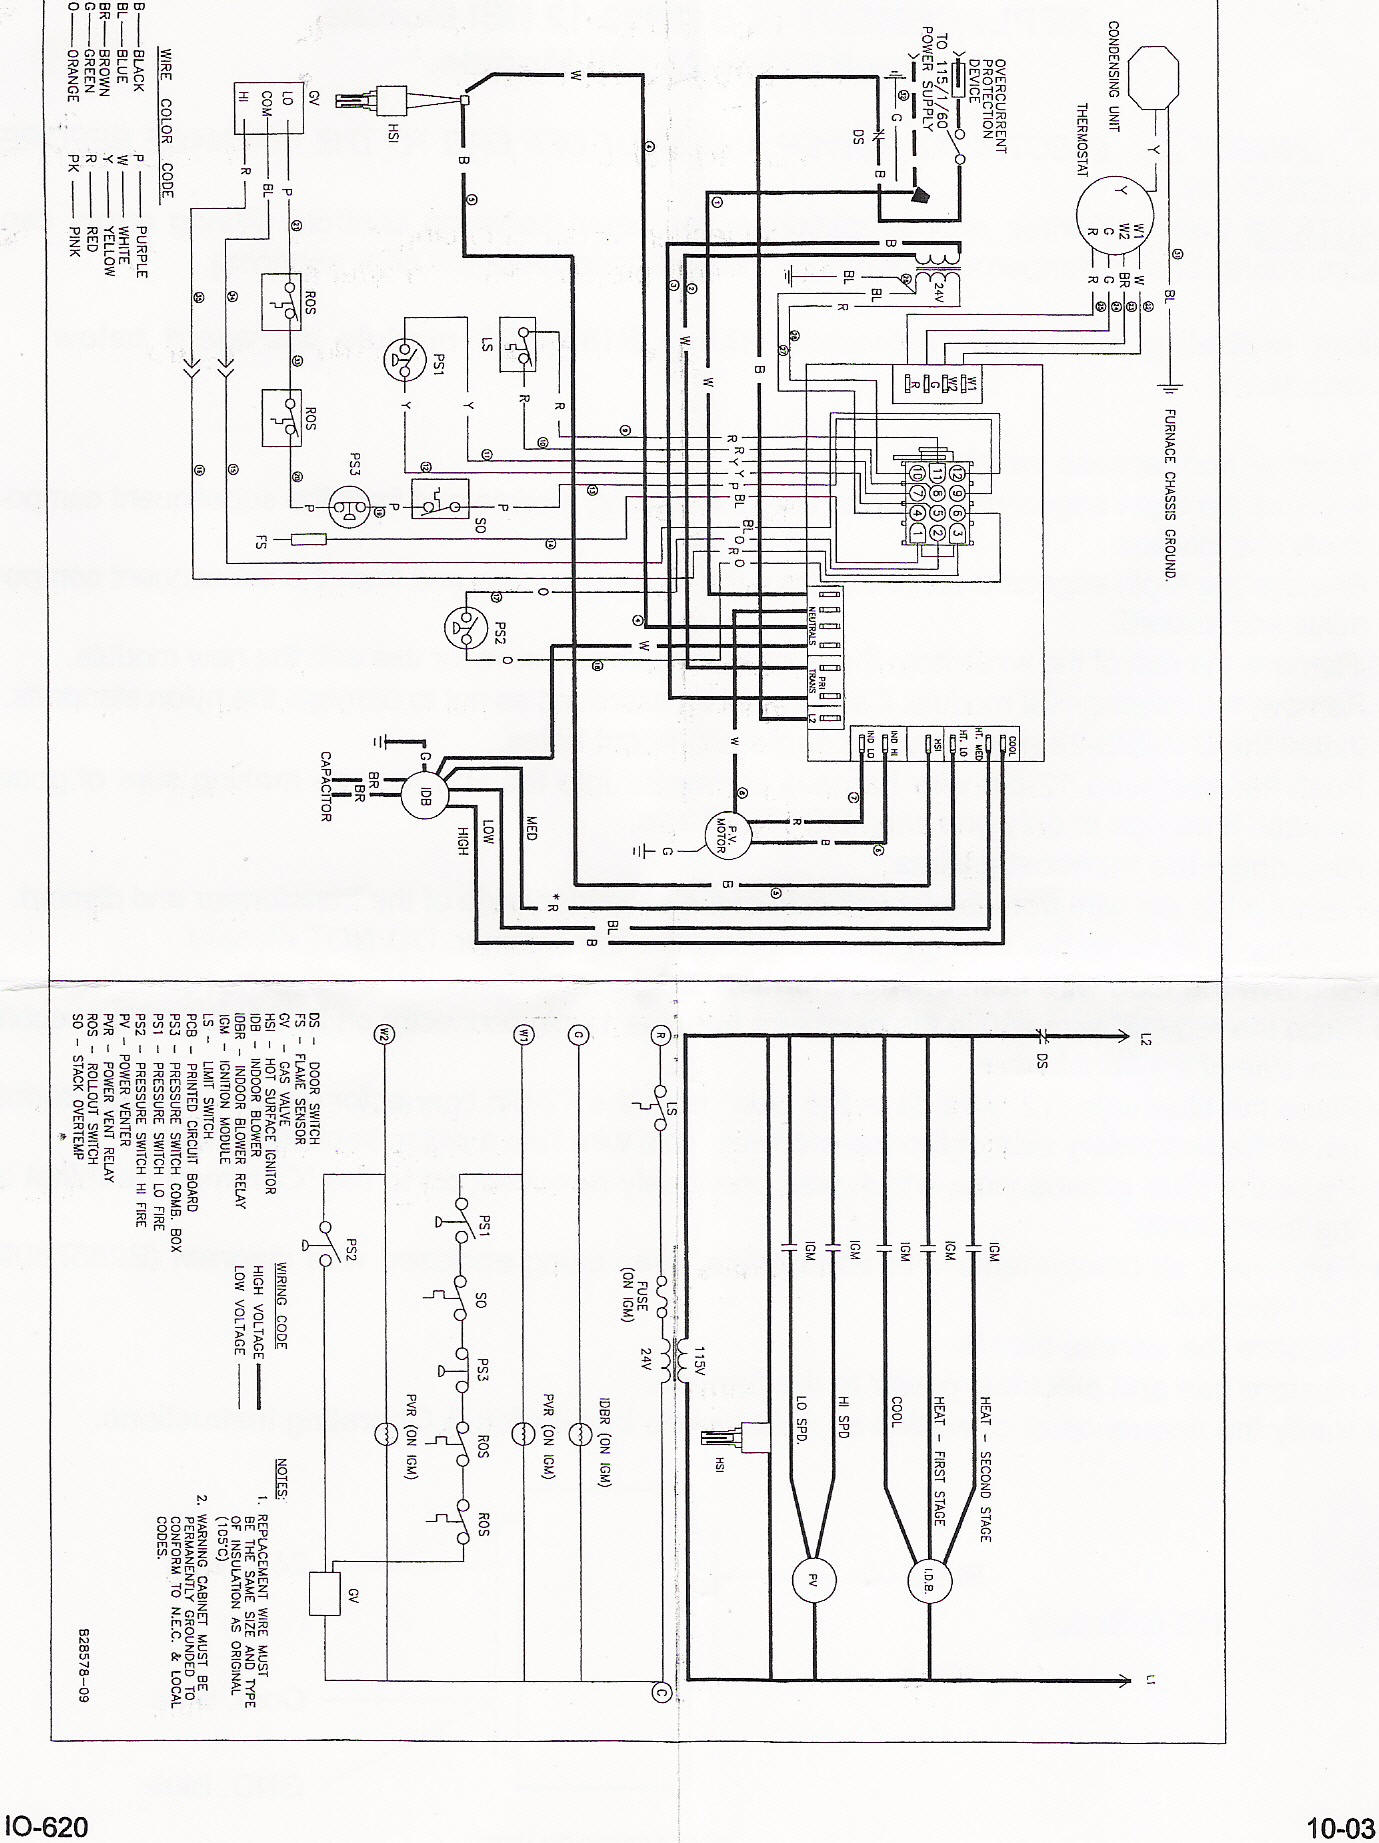 Wiring Diagram For Trane Air Conditioner Fujitsu Air Conditioner ...